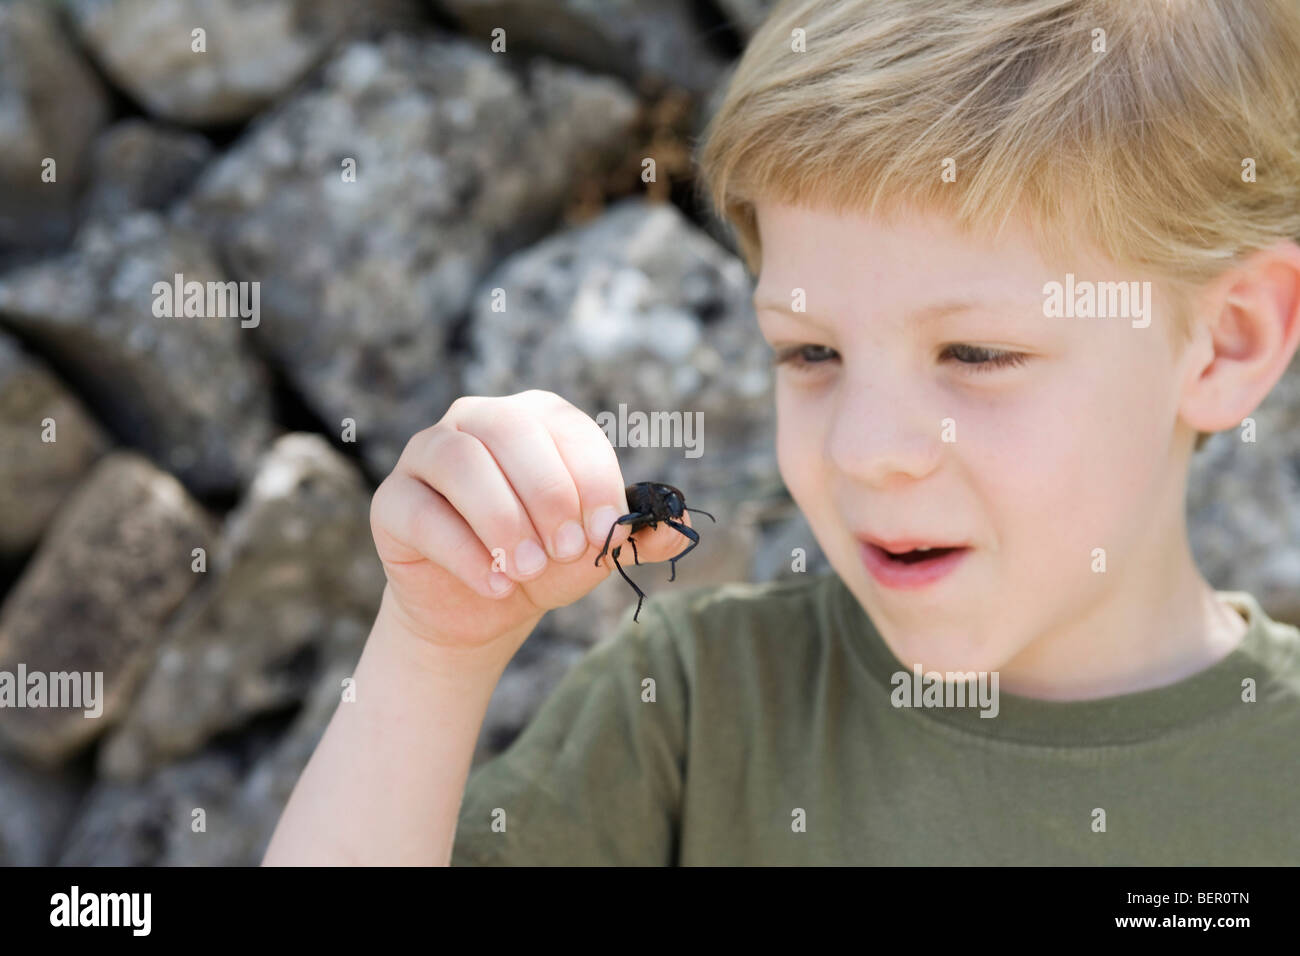 A young boy holding a beetle - Stock Image